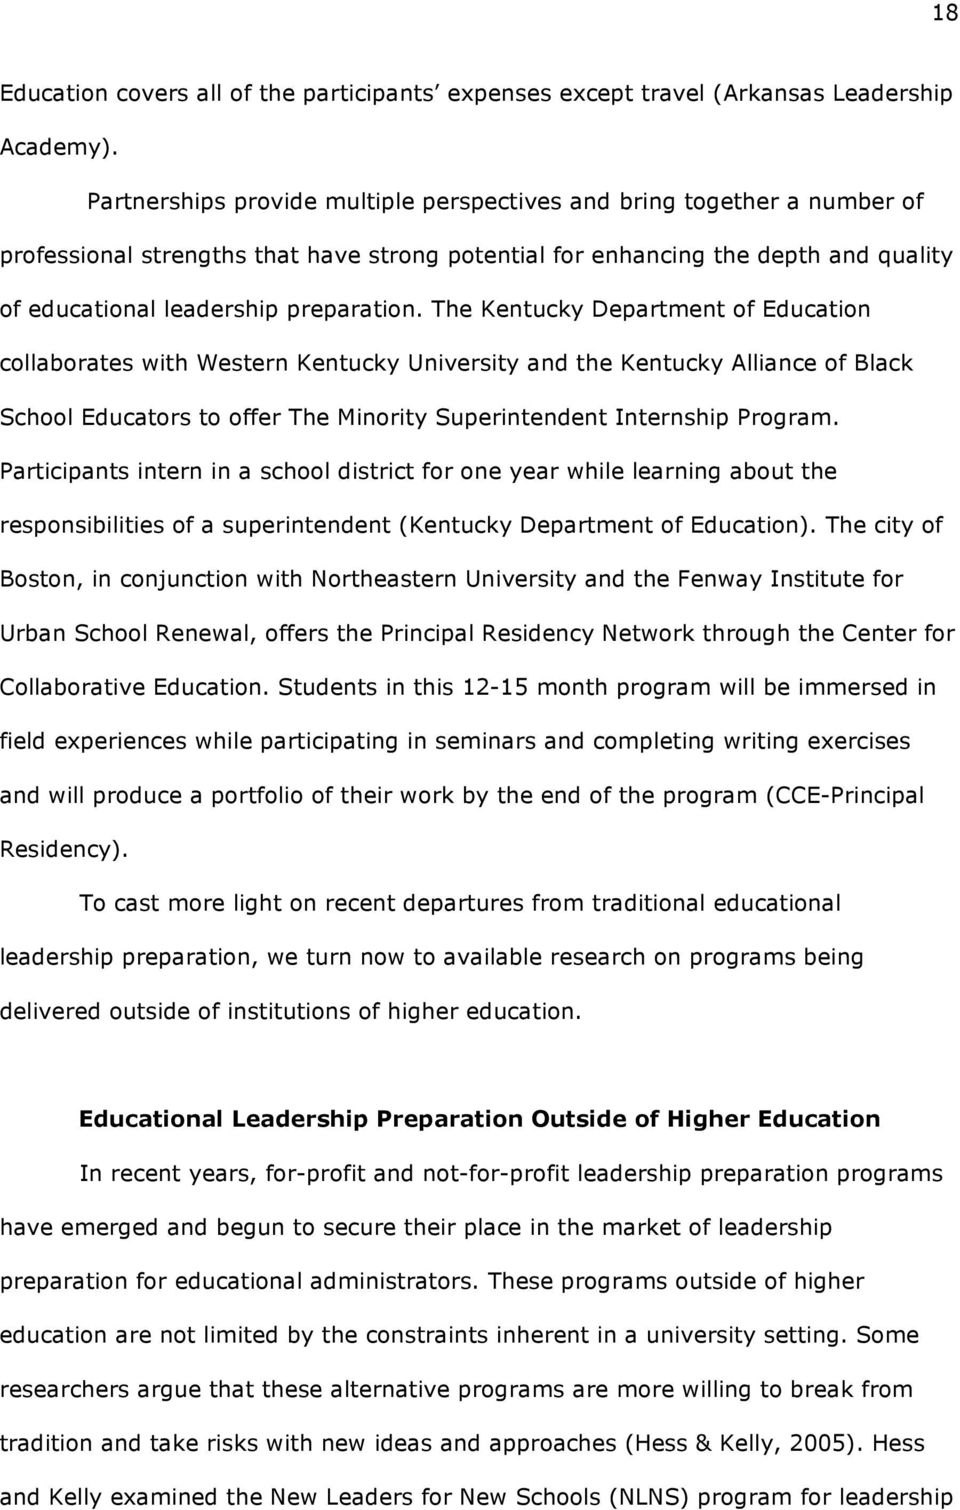 The Kentucky Department of Education collaborates with Western Kentucky University and the Kentucky Alliance of Black School Educators to offer The Minority Superintendent Internship Program.